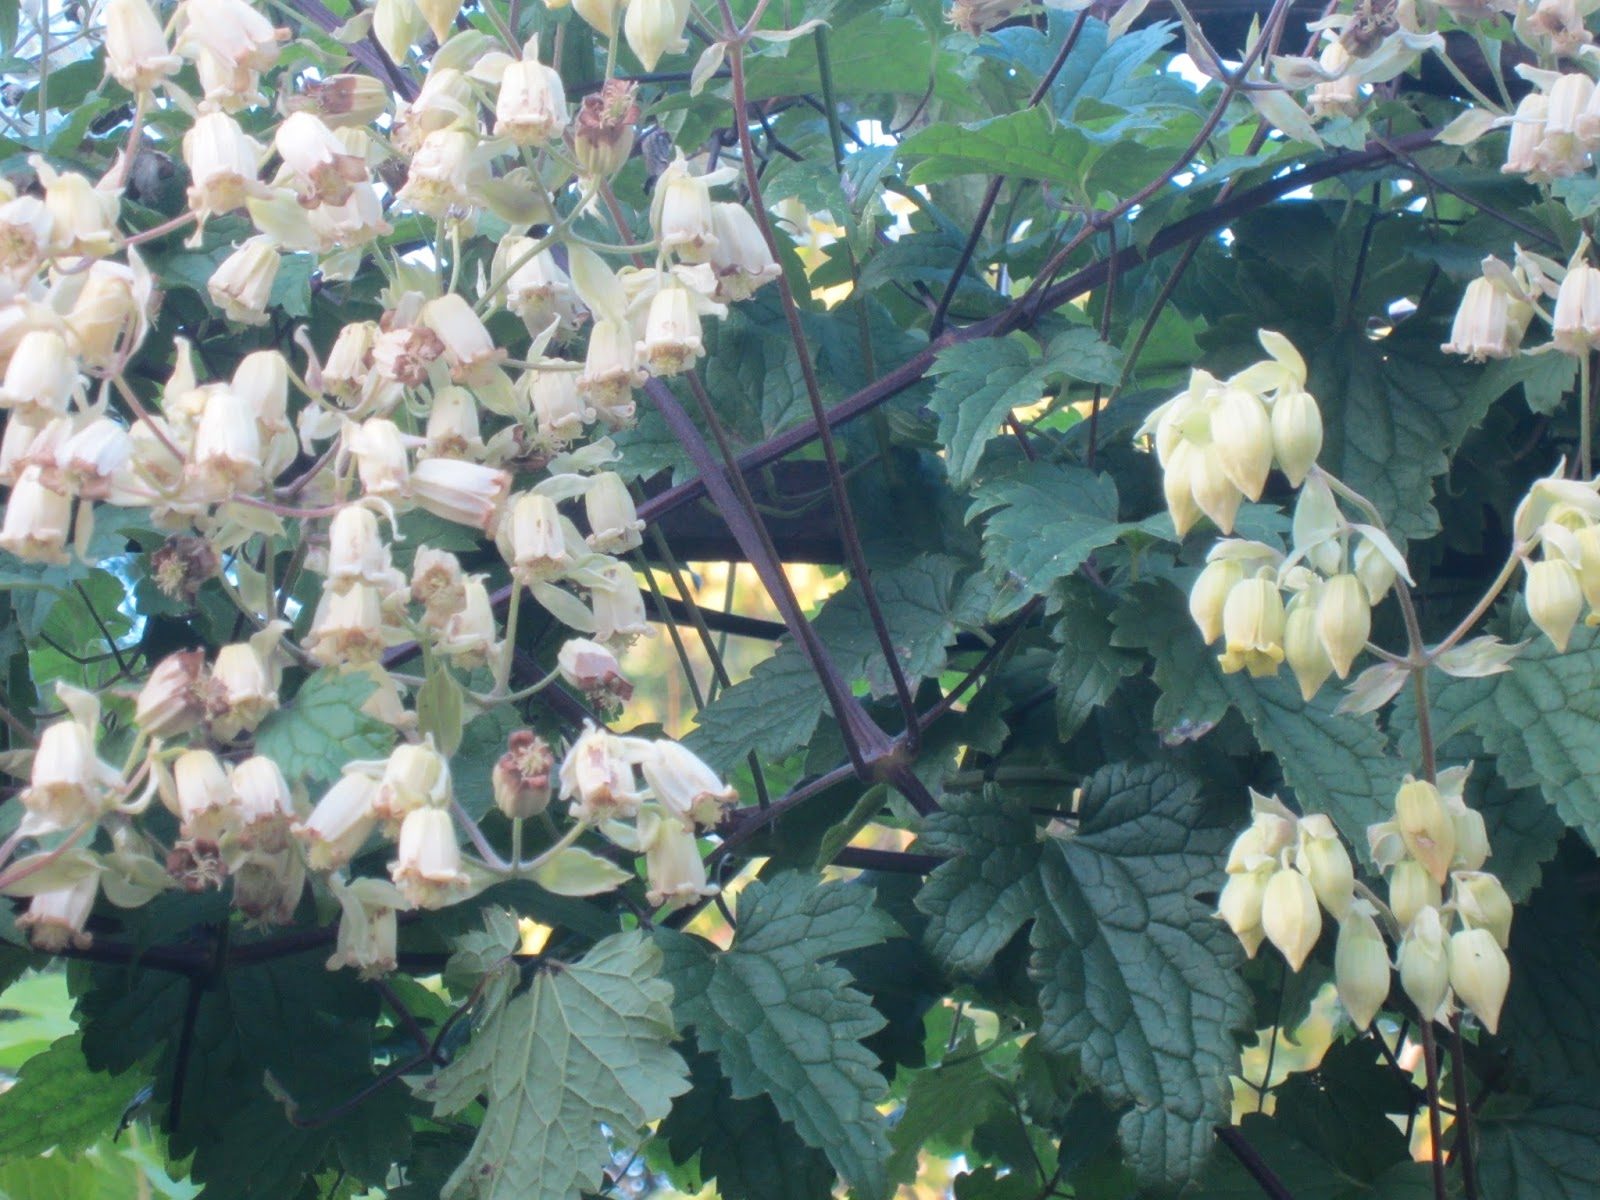 Autumn joy john brookes raves rants an unusual clematis with soft yellowish bell shaped flowers coming from a mass of fern like leaves clematis rehderiana mightylinksfo